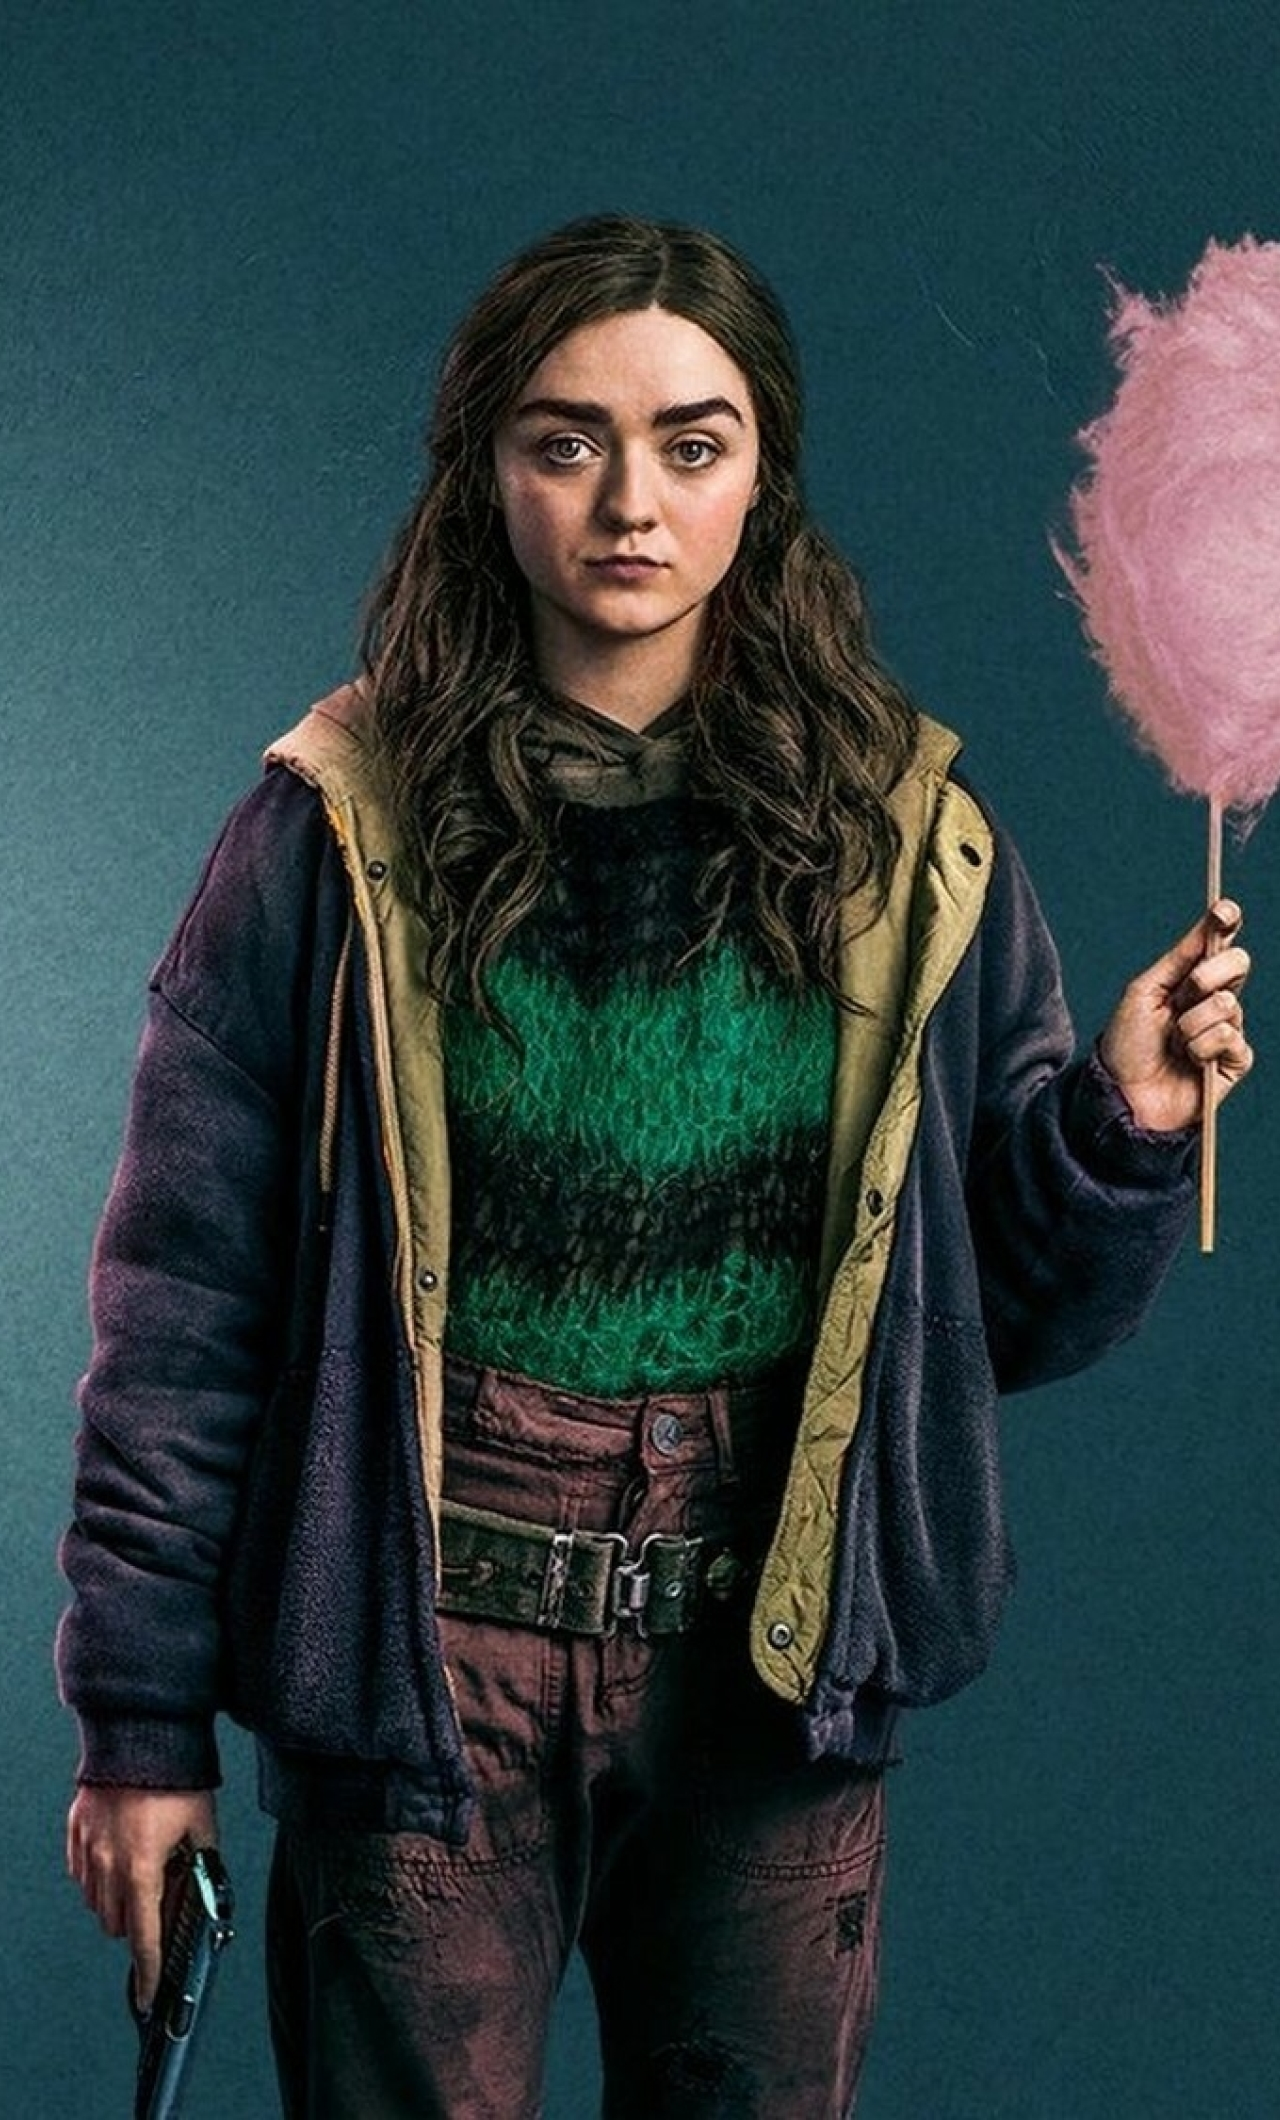 Maisie Williams Two Weeks To Live Wallpaper in 1280x2120 Resolution